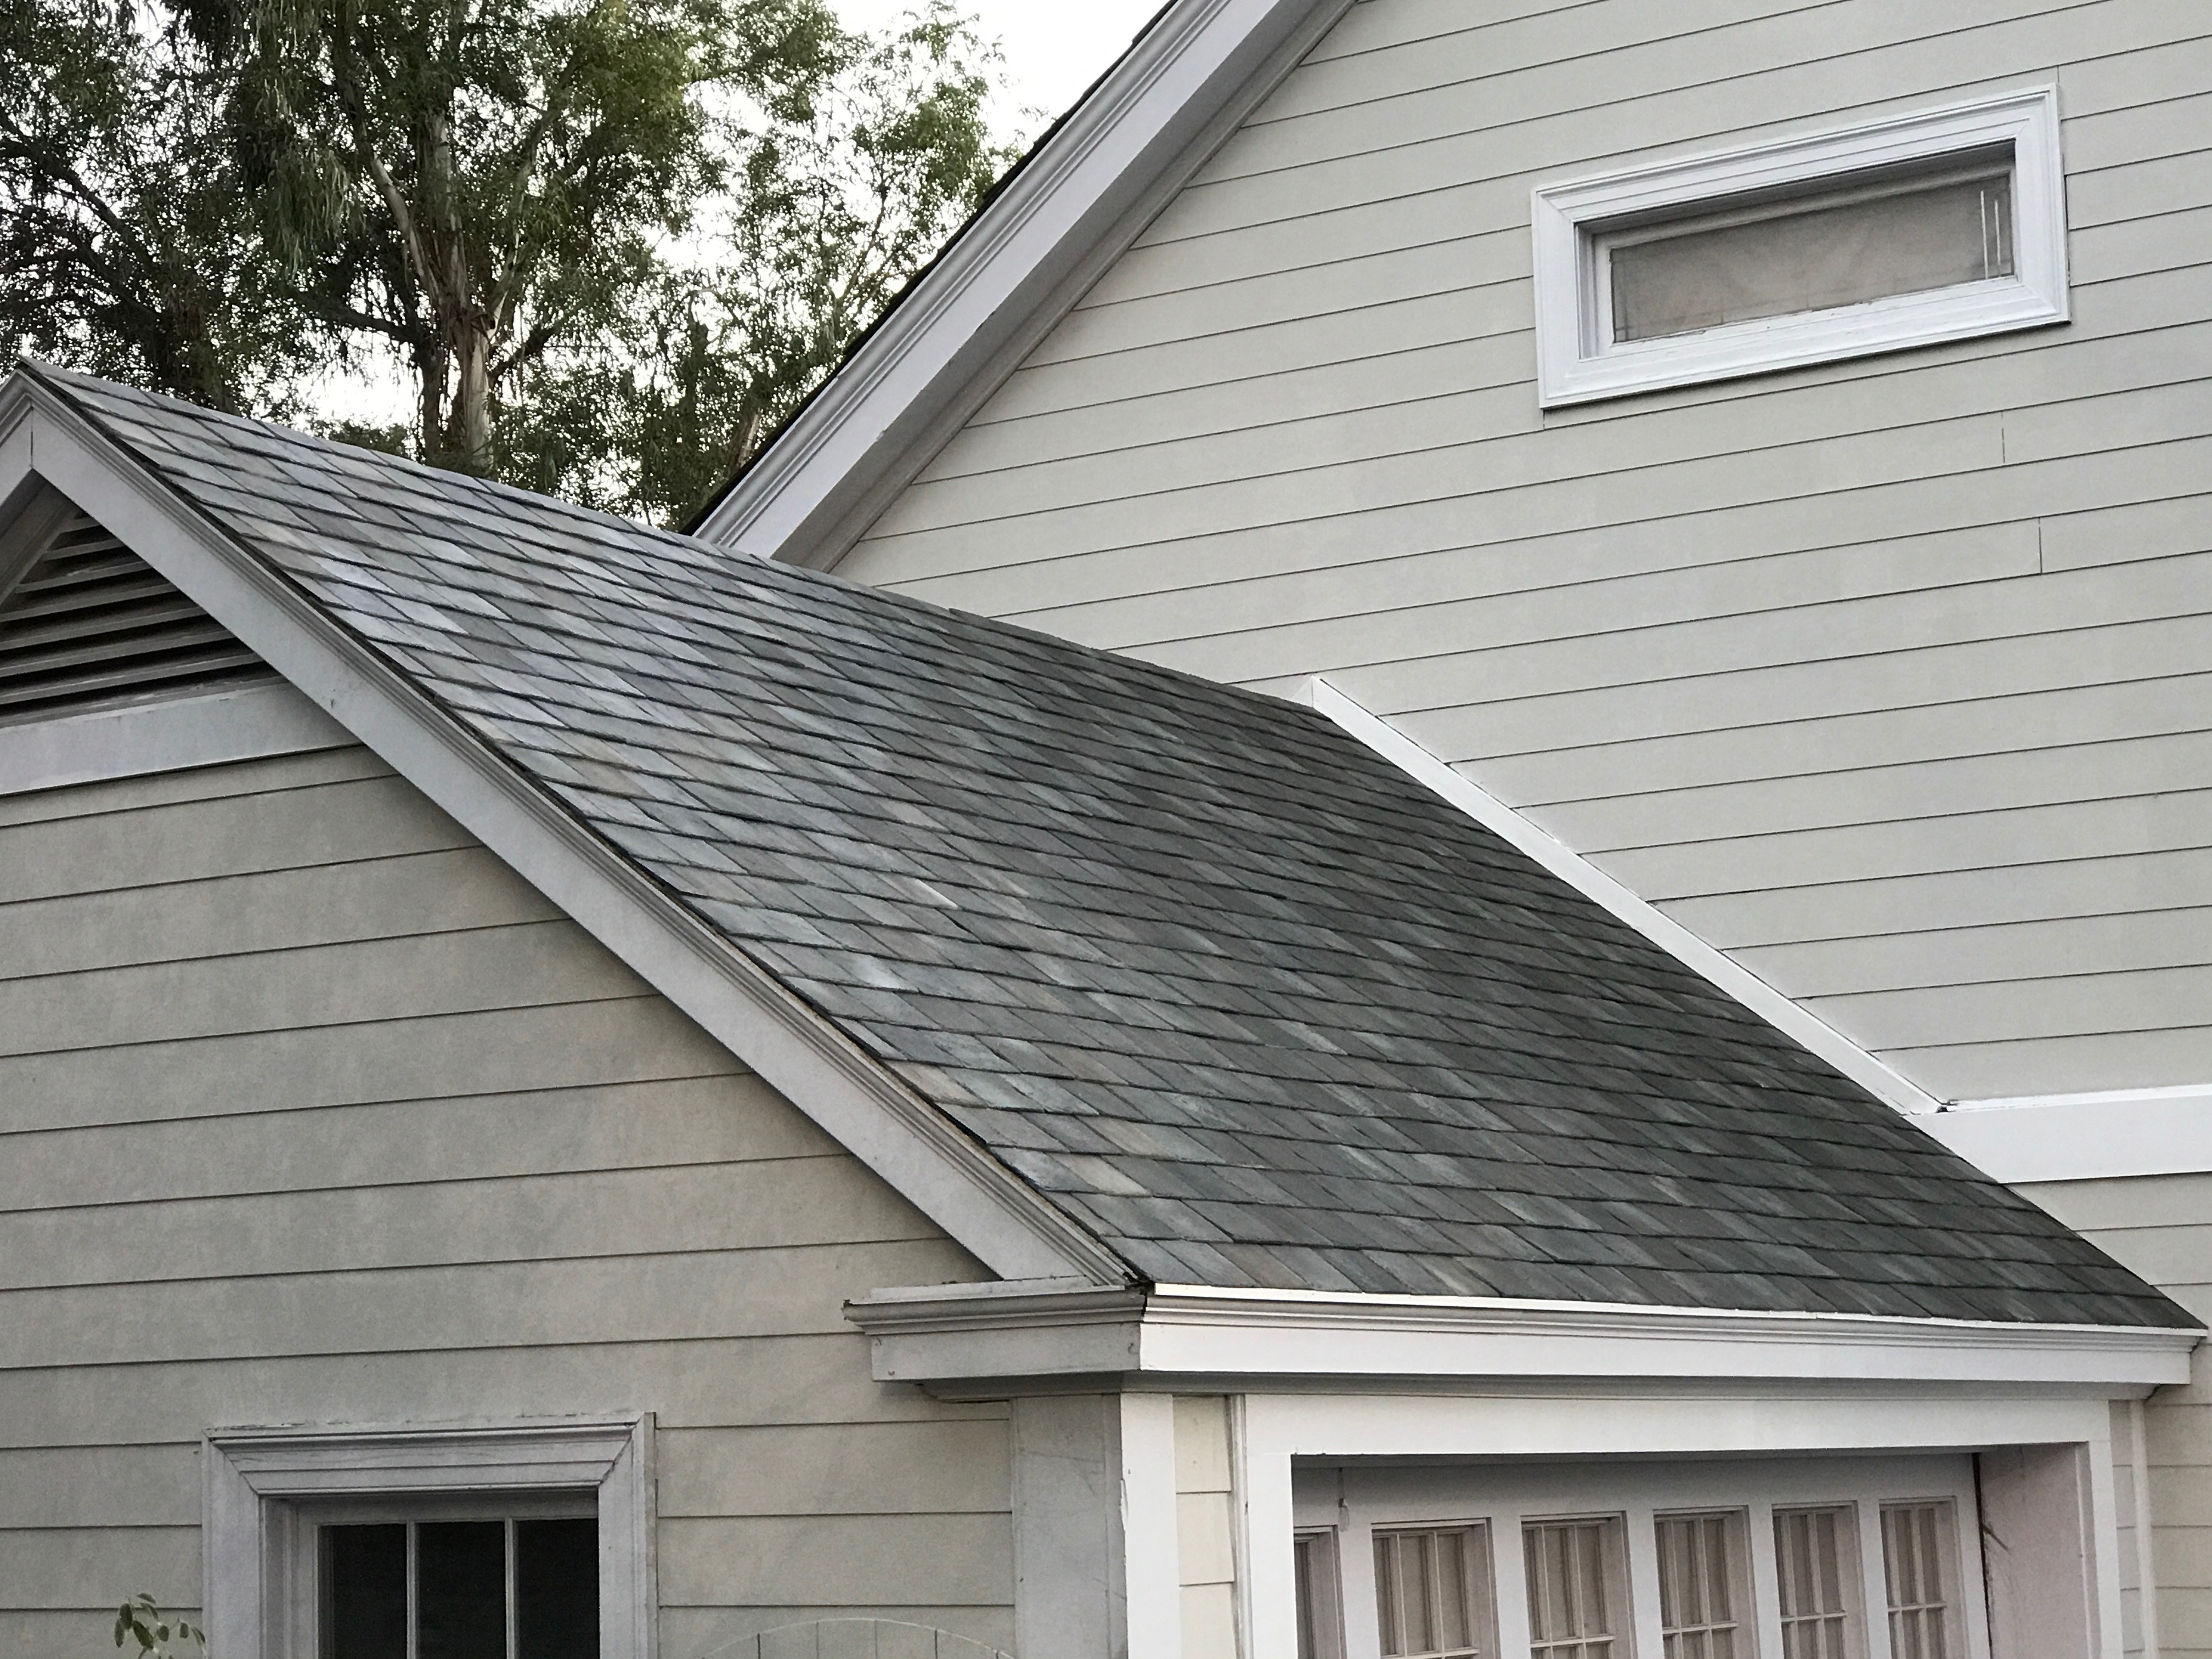 Tesla Shingles Cost >> These Are Tesla S Stunning New Solar Roof Tiles For Homes Techcrunch